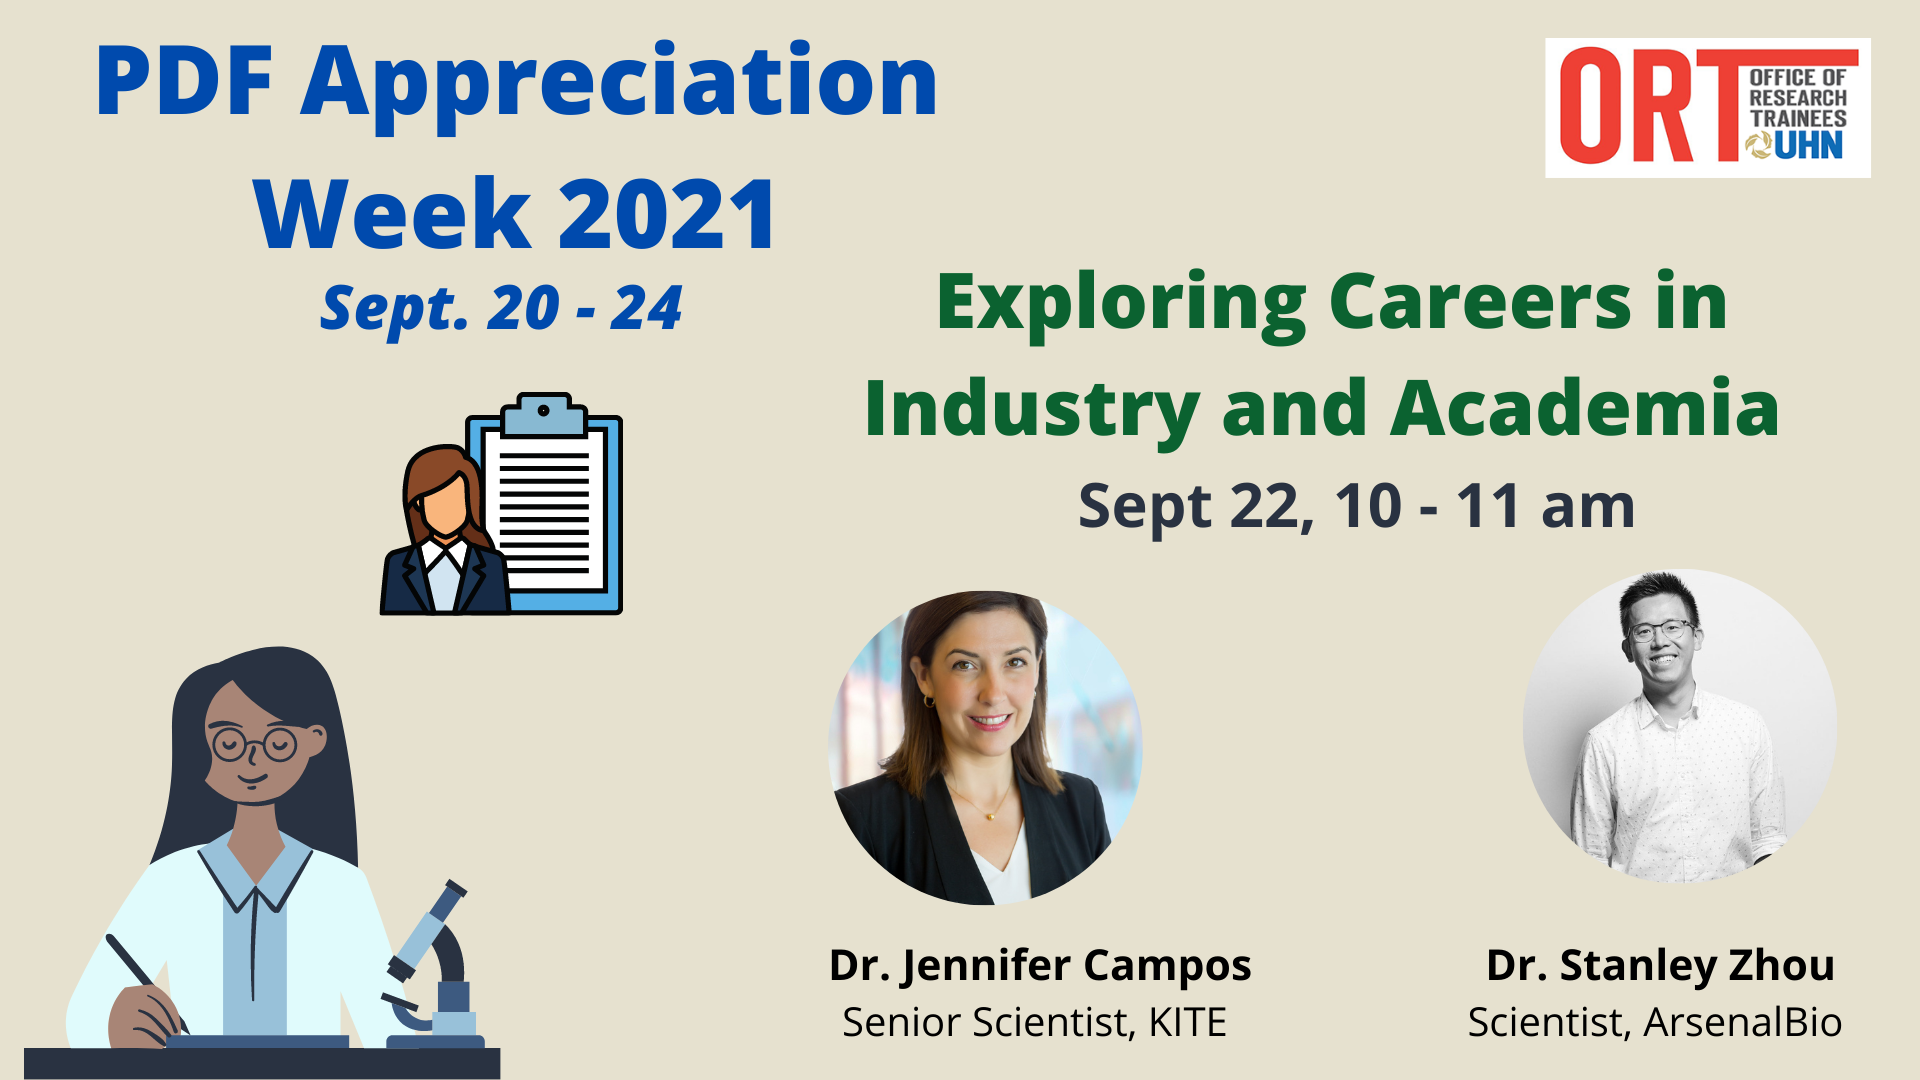 A PDF Appreciation Week 2021 Poster. Exploring Careers in Industry and Academia. Sept 23, 10-11 am. Dr. Jennifer Campos, Senior Scientist KITE and Dr. Stanley Zhou, Scientist ArsenalBio